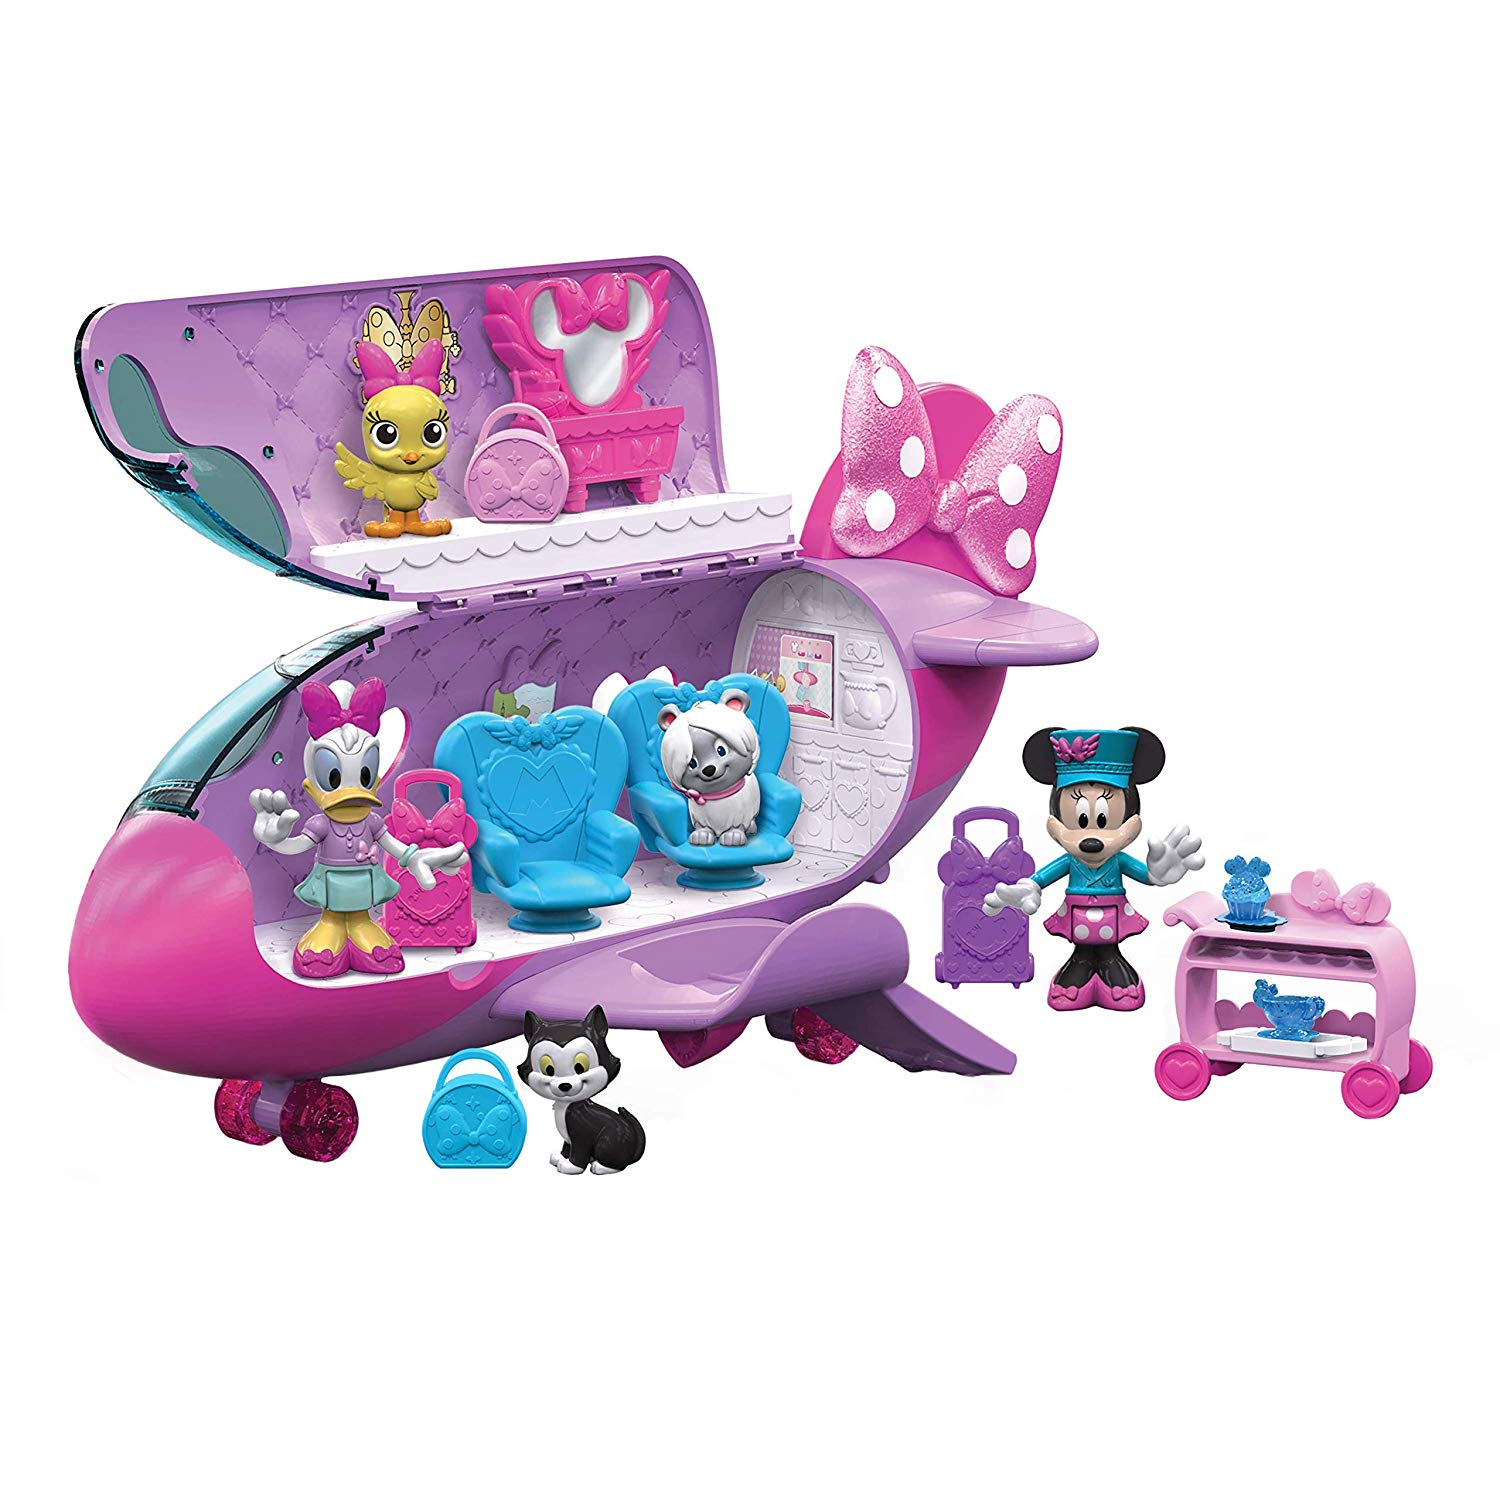 Disney Minnie Mouse Girls Bow Liner Jet Toy Plane Gift Set